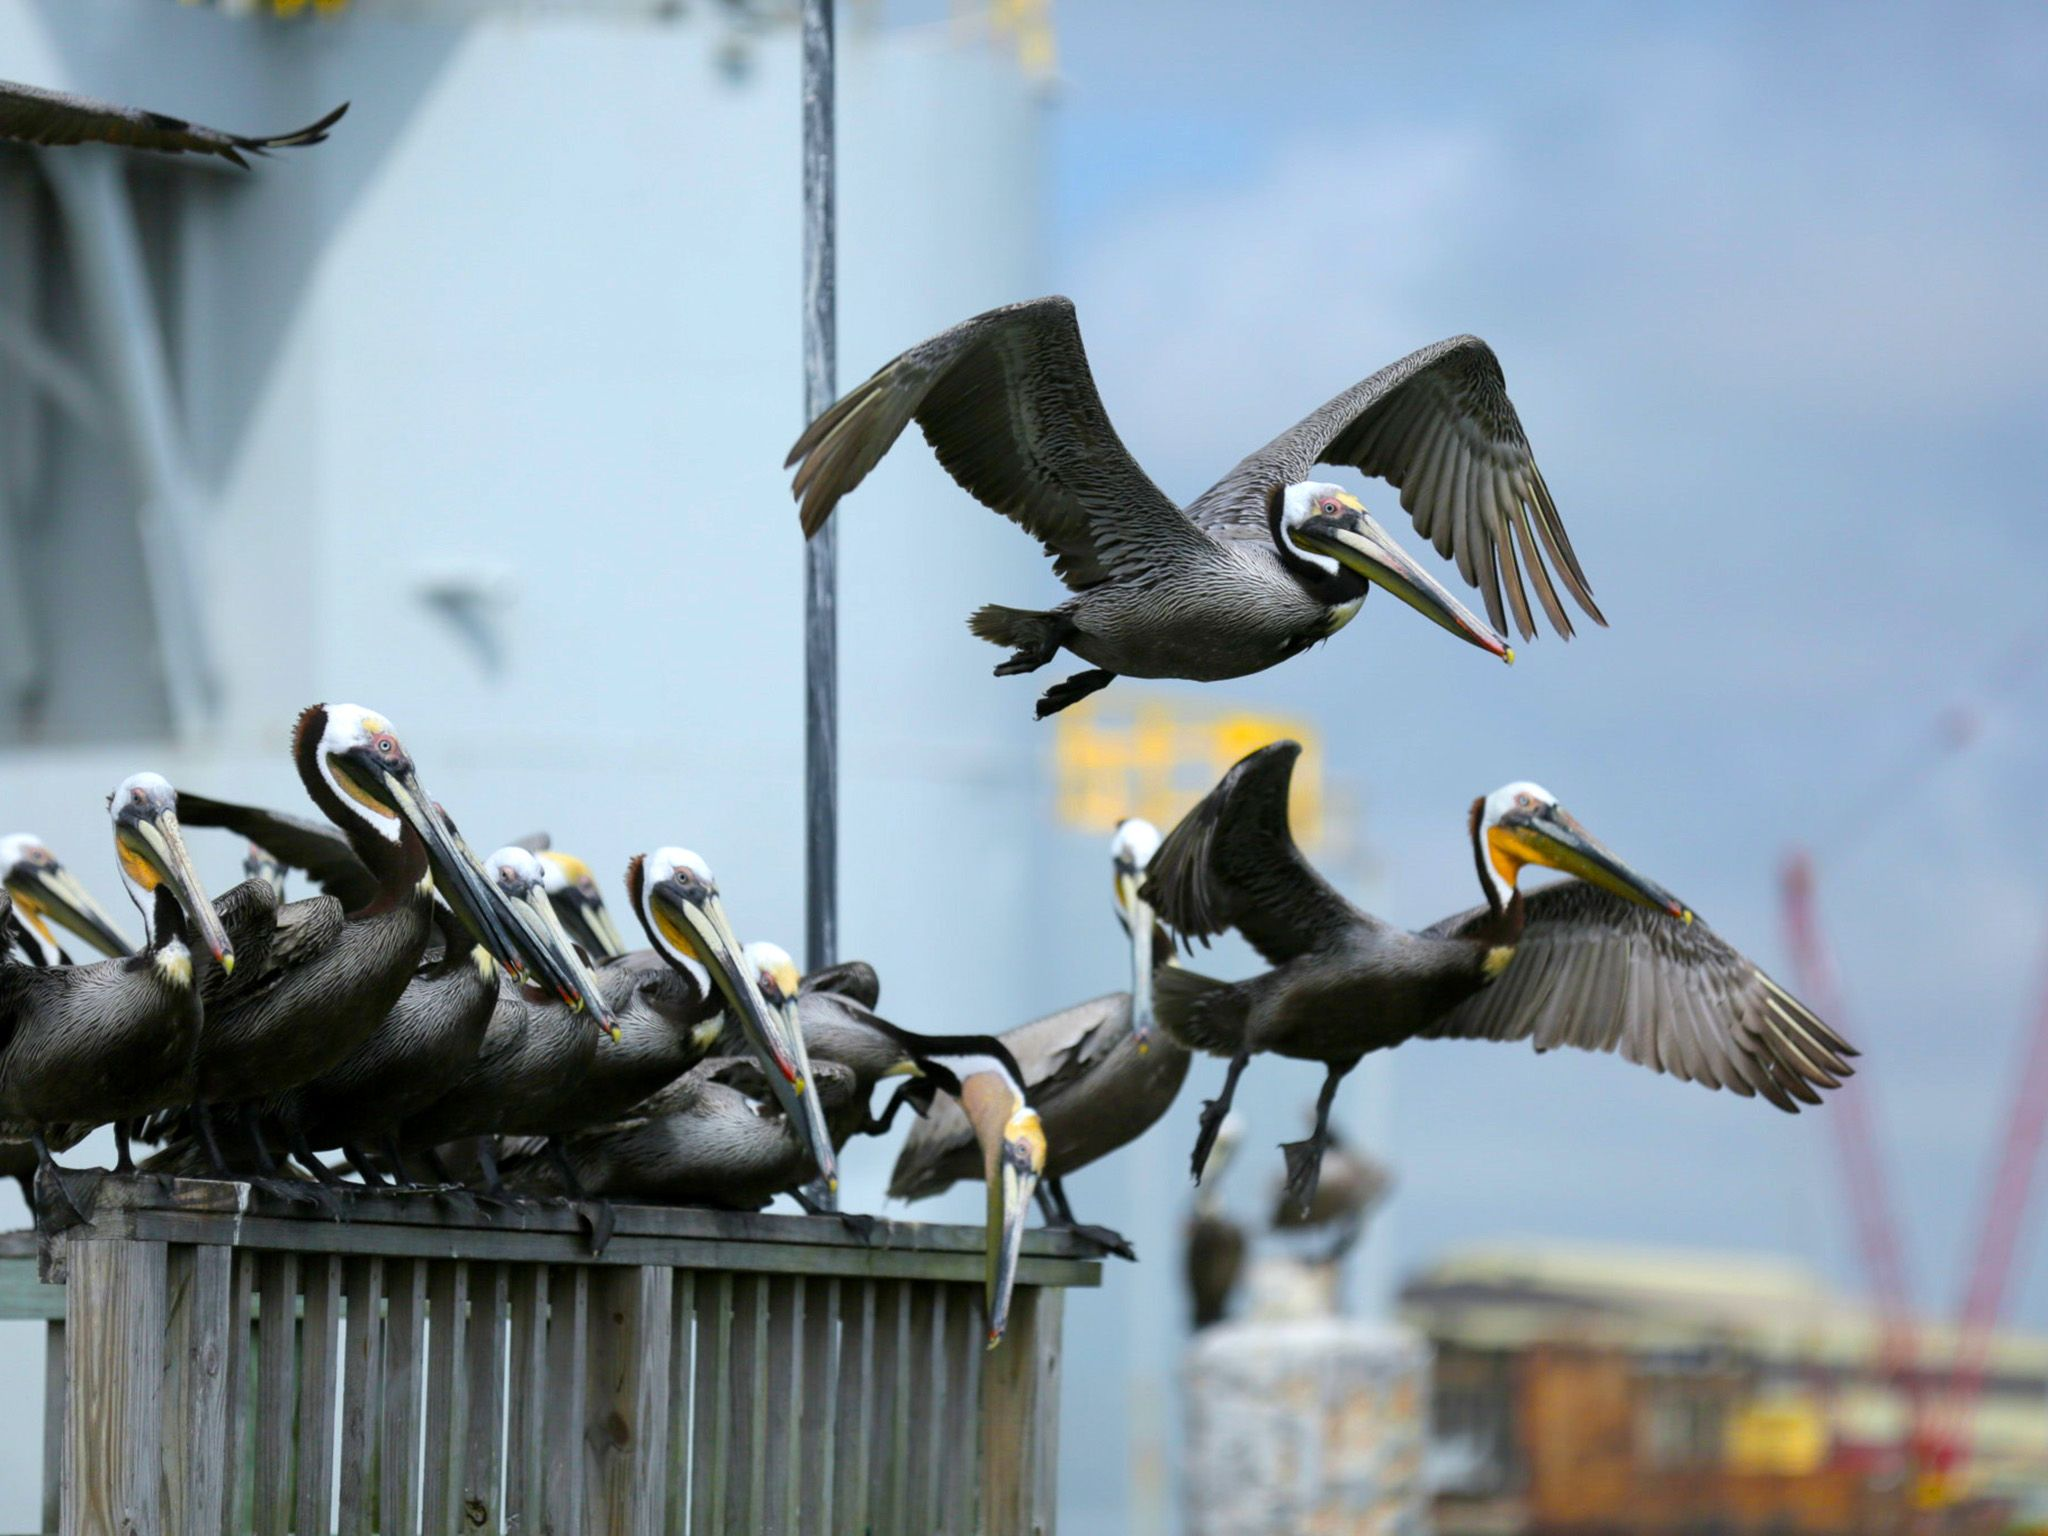 Galveston, Texas: Brown pelicans flying. This image is from Big Fish Texas. [Foto del día - diciembre 2015]